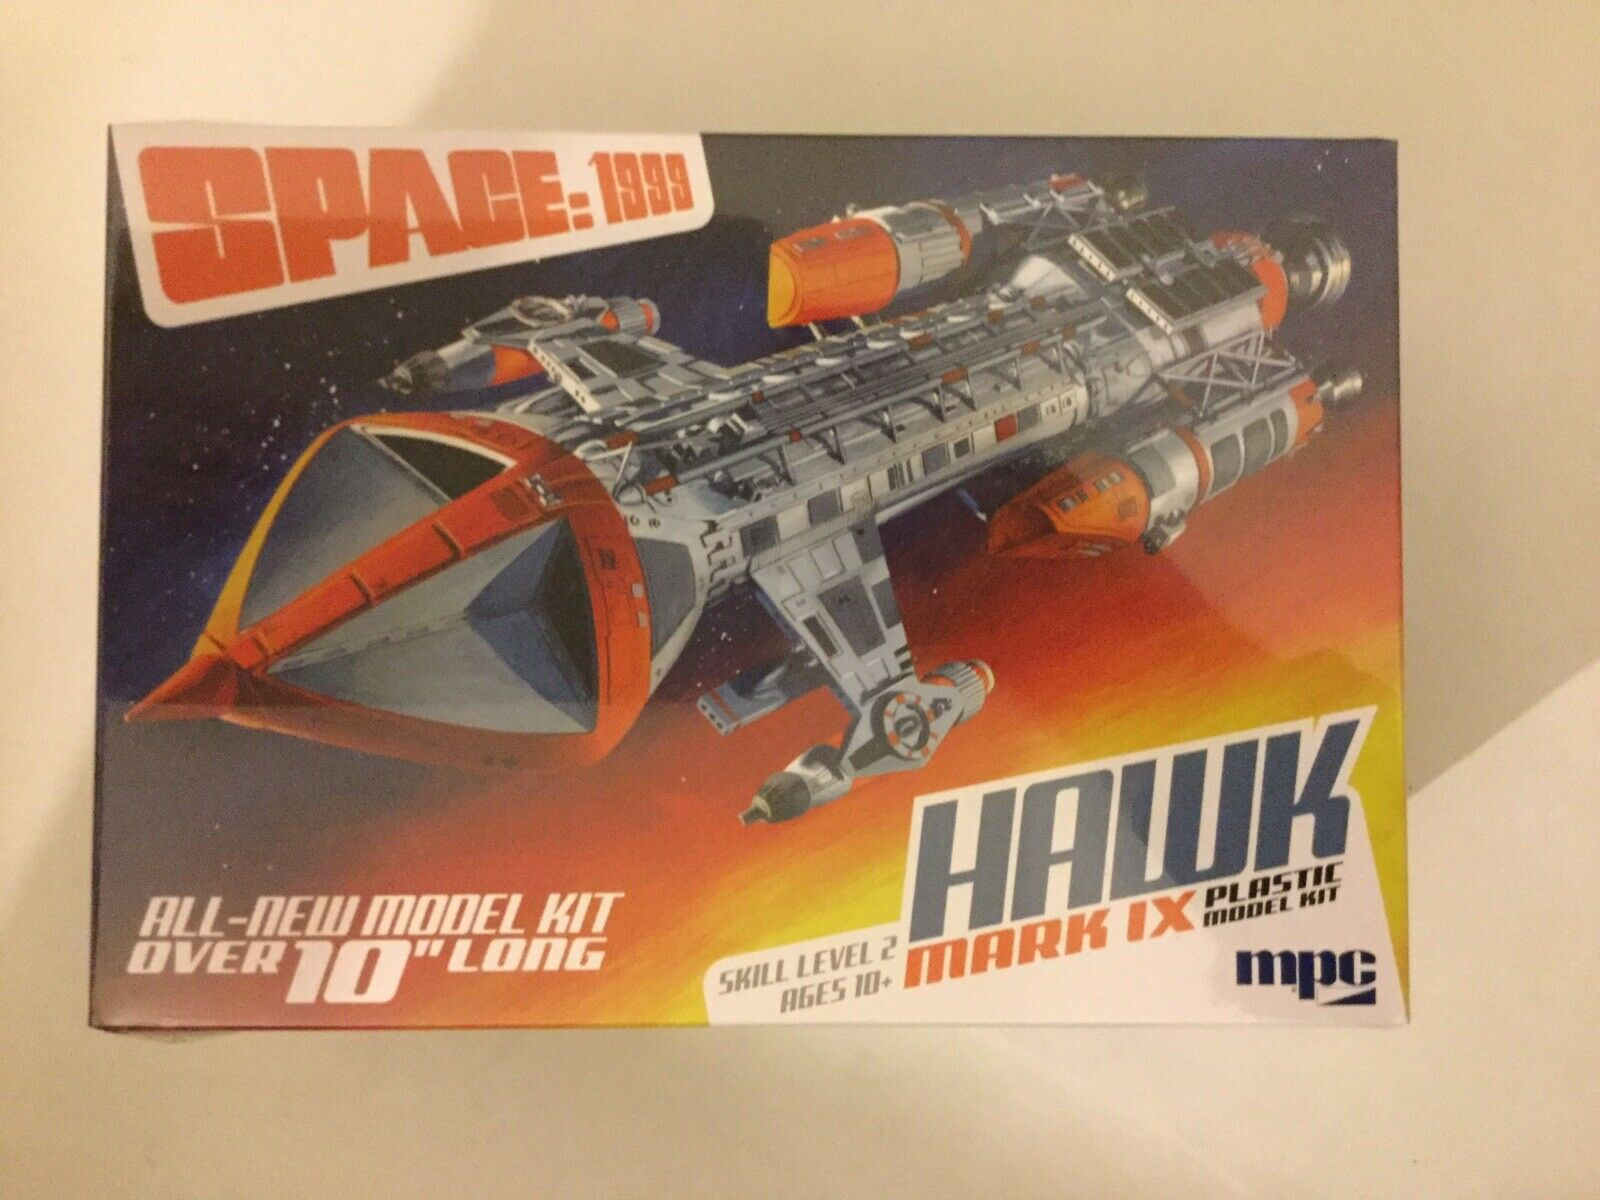 "Space 1999 Hawk Mark IX Plastic Model Kit 10"" Long MPC881"